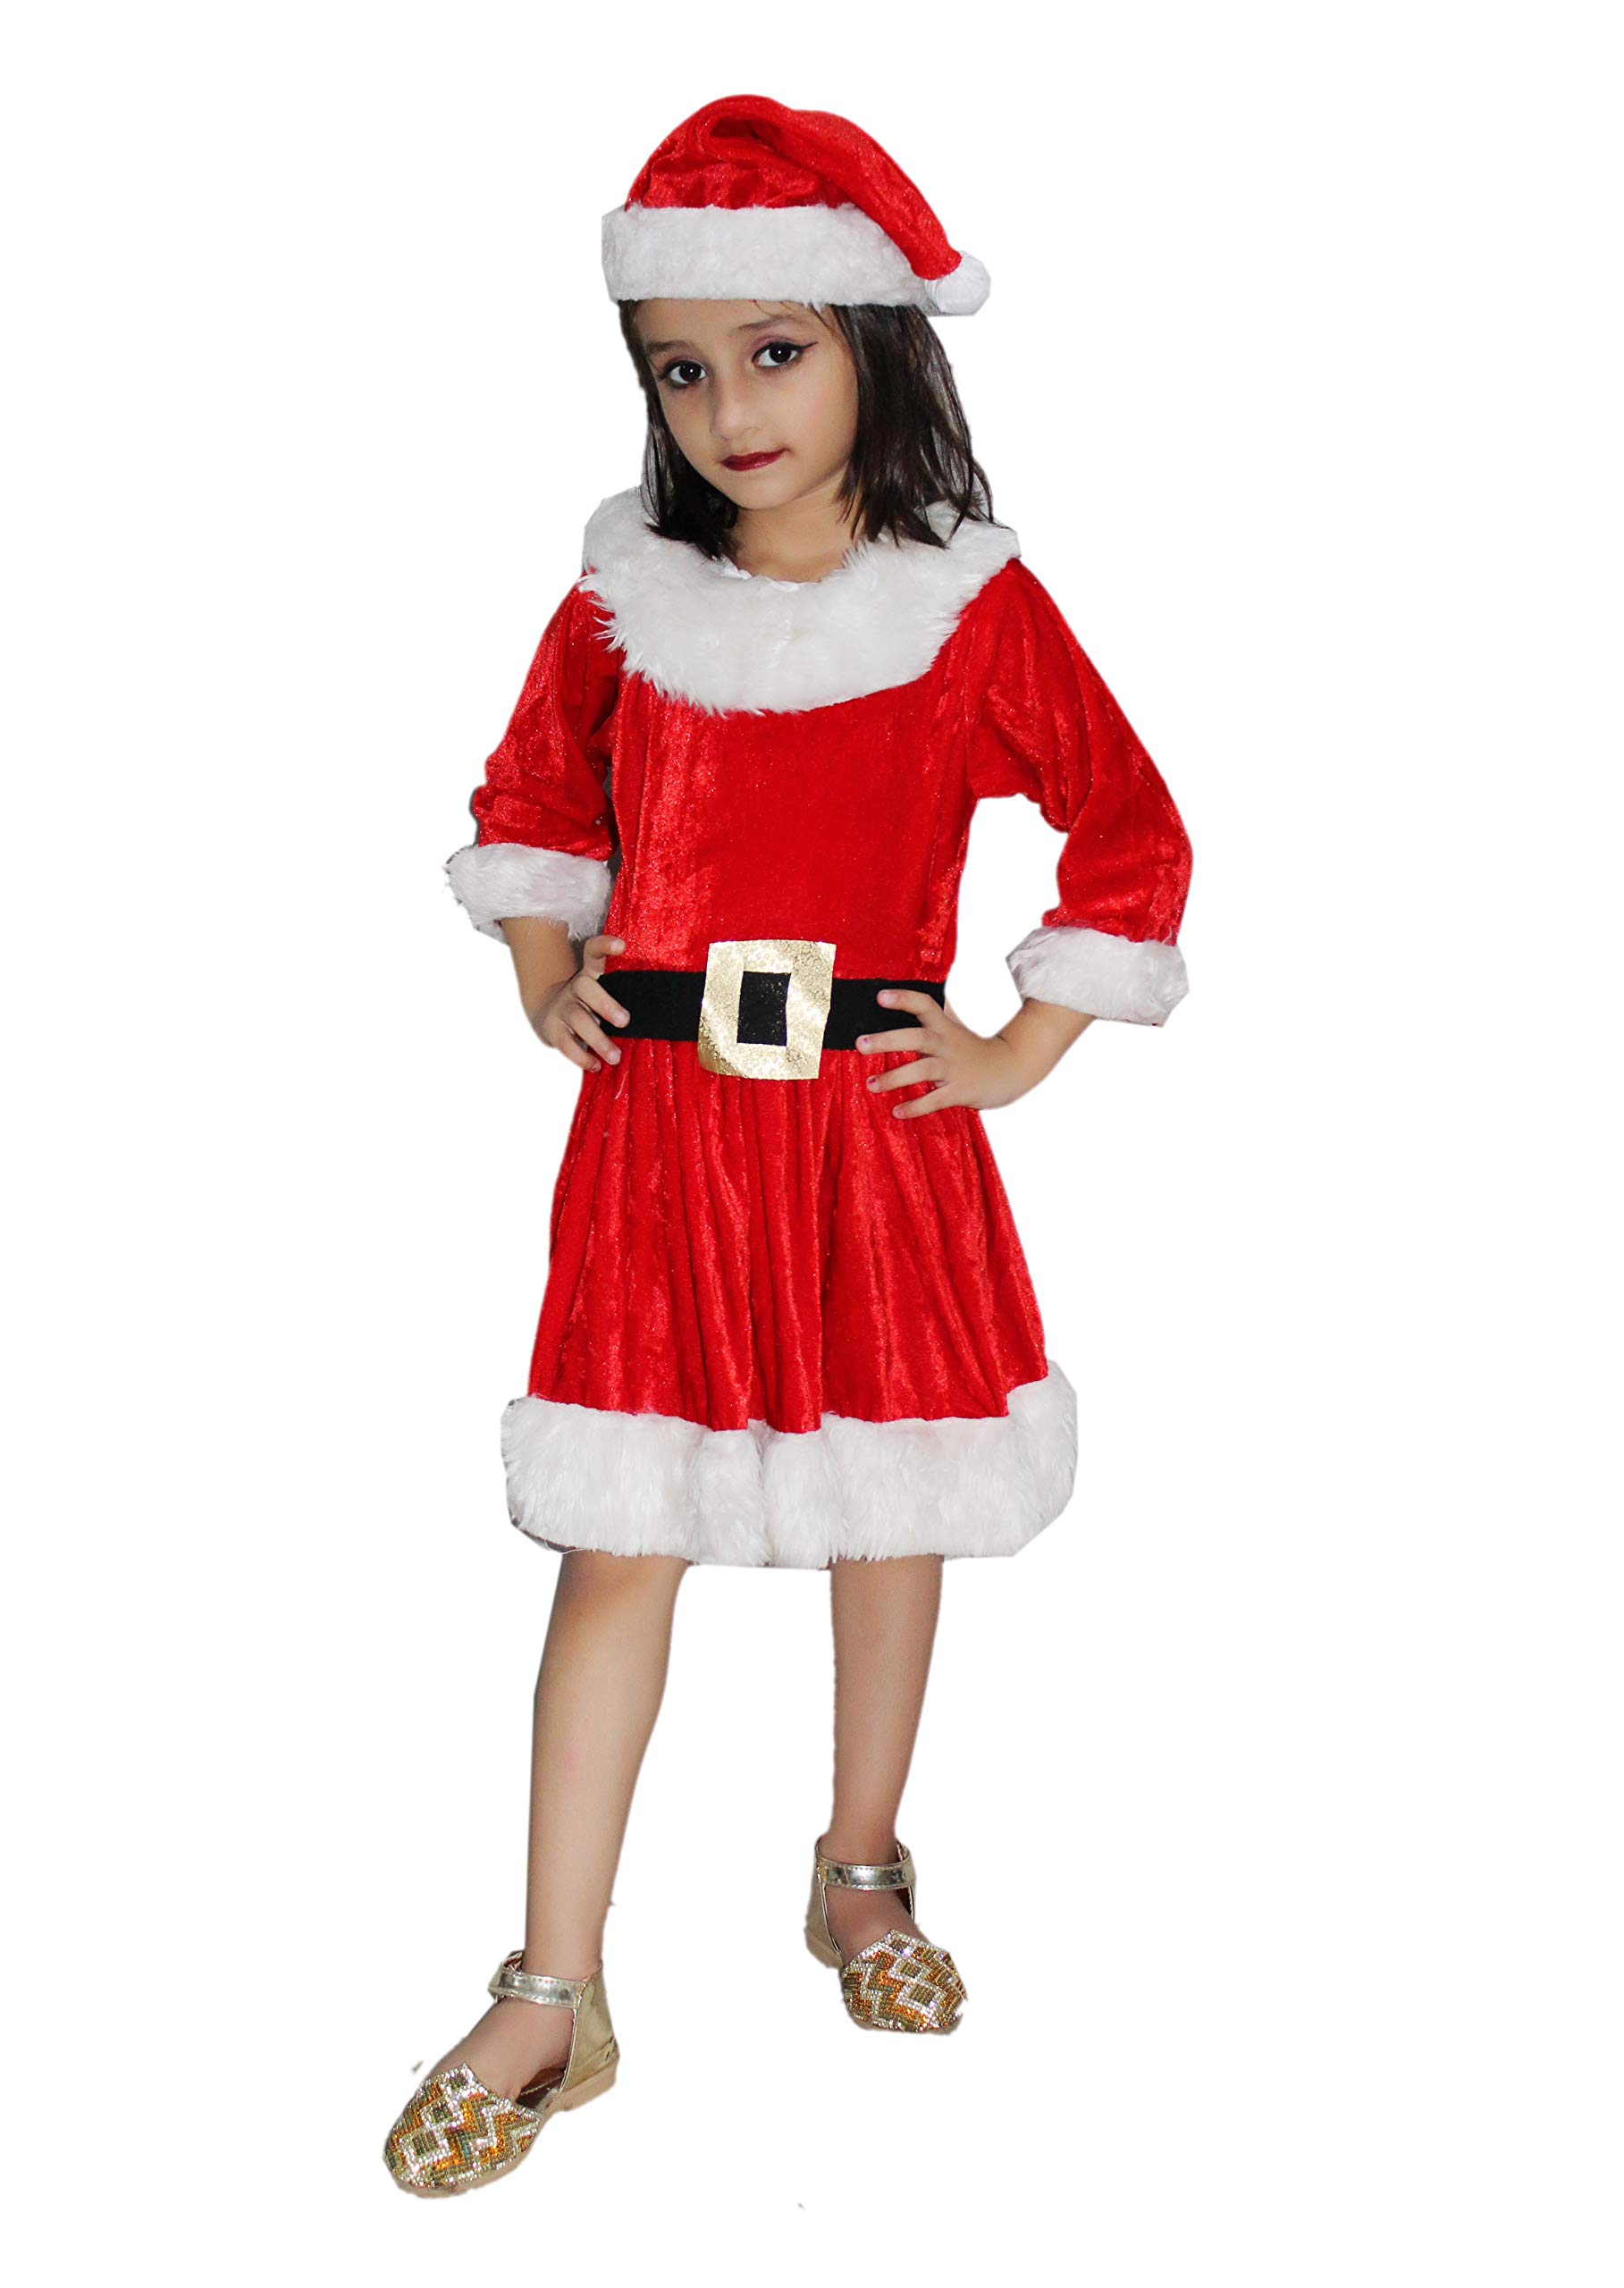 7de1326ccc5 Kaku Fancy Dresses Santa Girl Costume for Kids Christmas Day School Annual  Function Theme Party Competition Stage Shows Birthday Party Dress - Gia  Designer